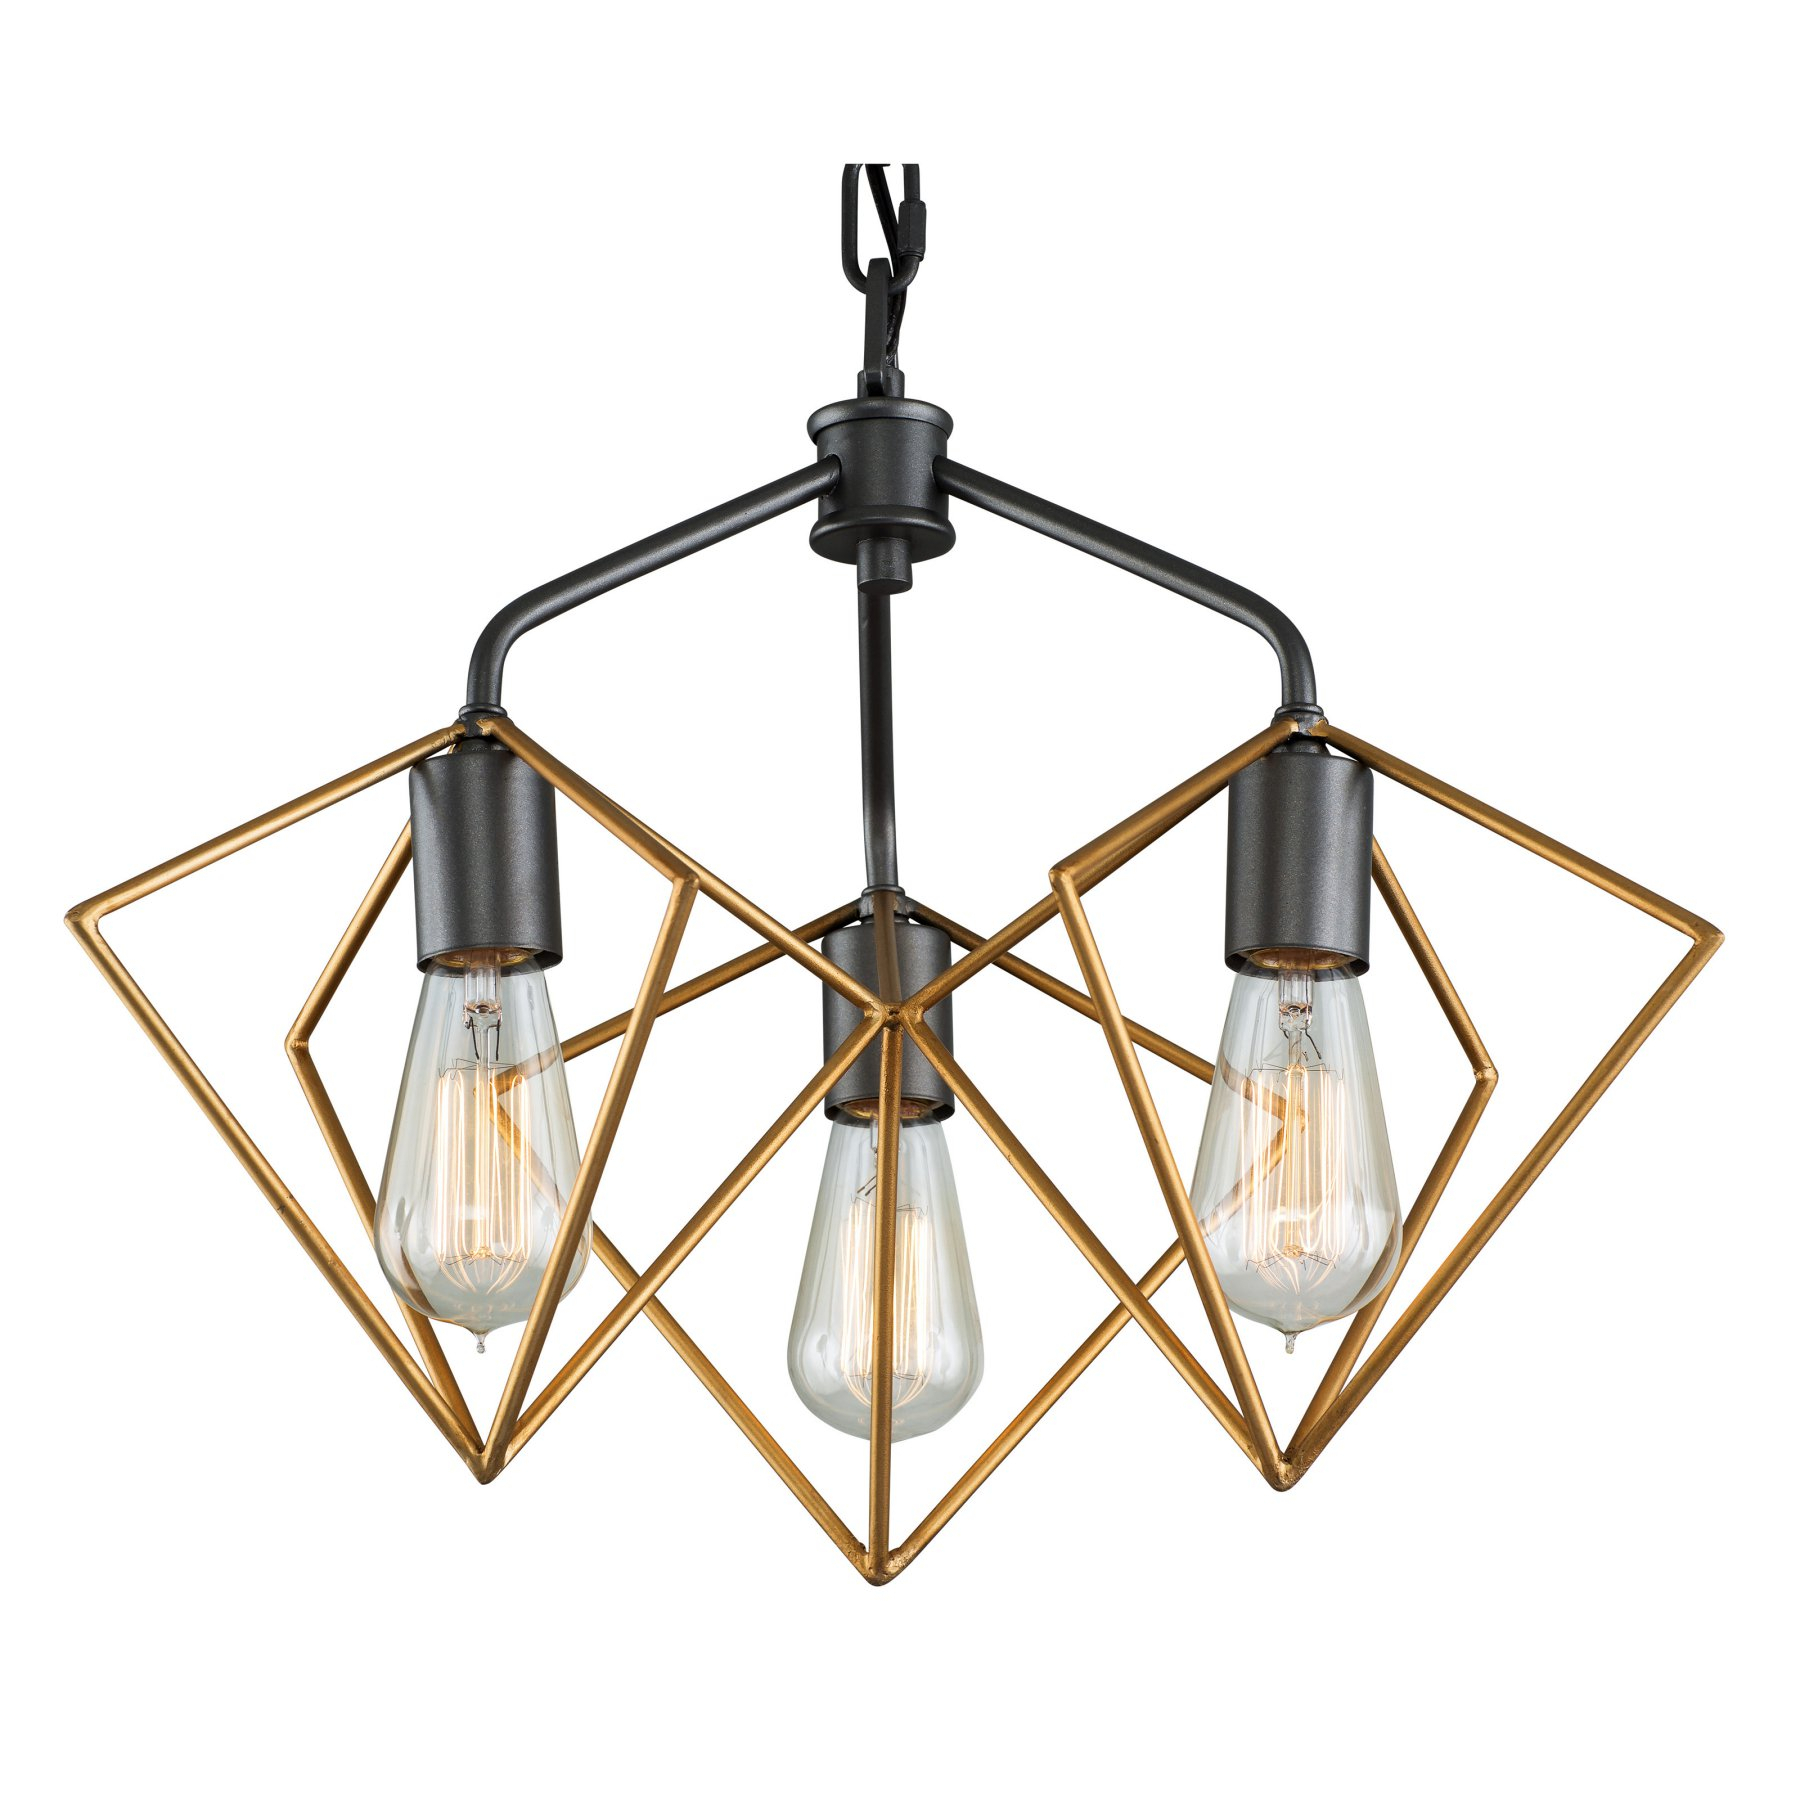 Varaluz Metropolis 261p03agrb Pendant Light – 261p03agrb Intended For Hewitt 4 Light Square Chandeliers (View 6 of 30)